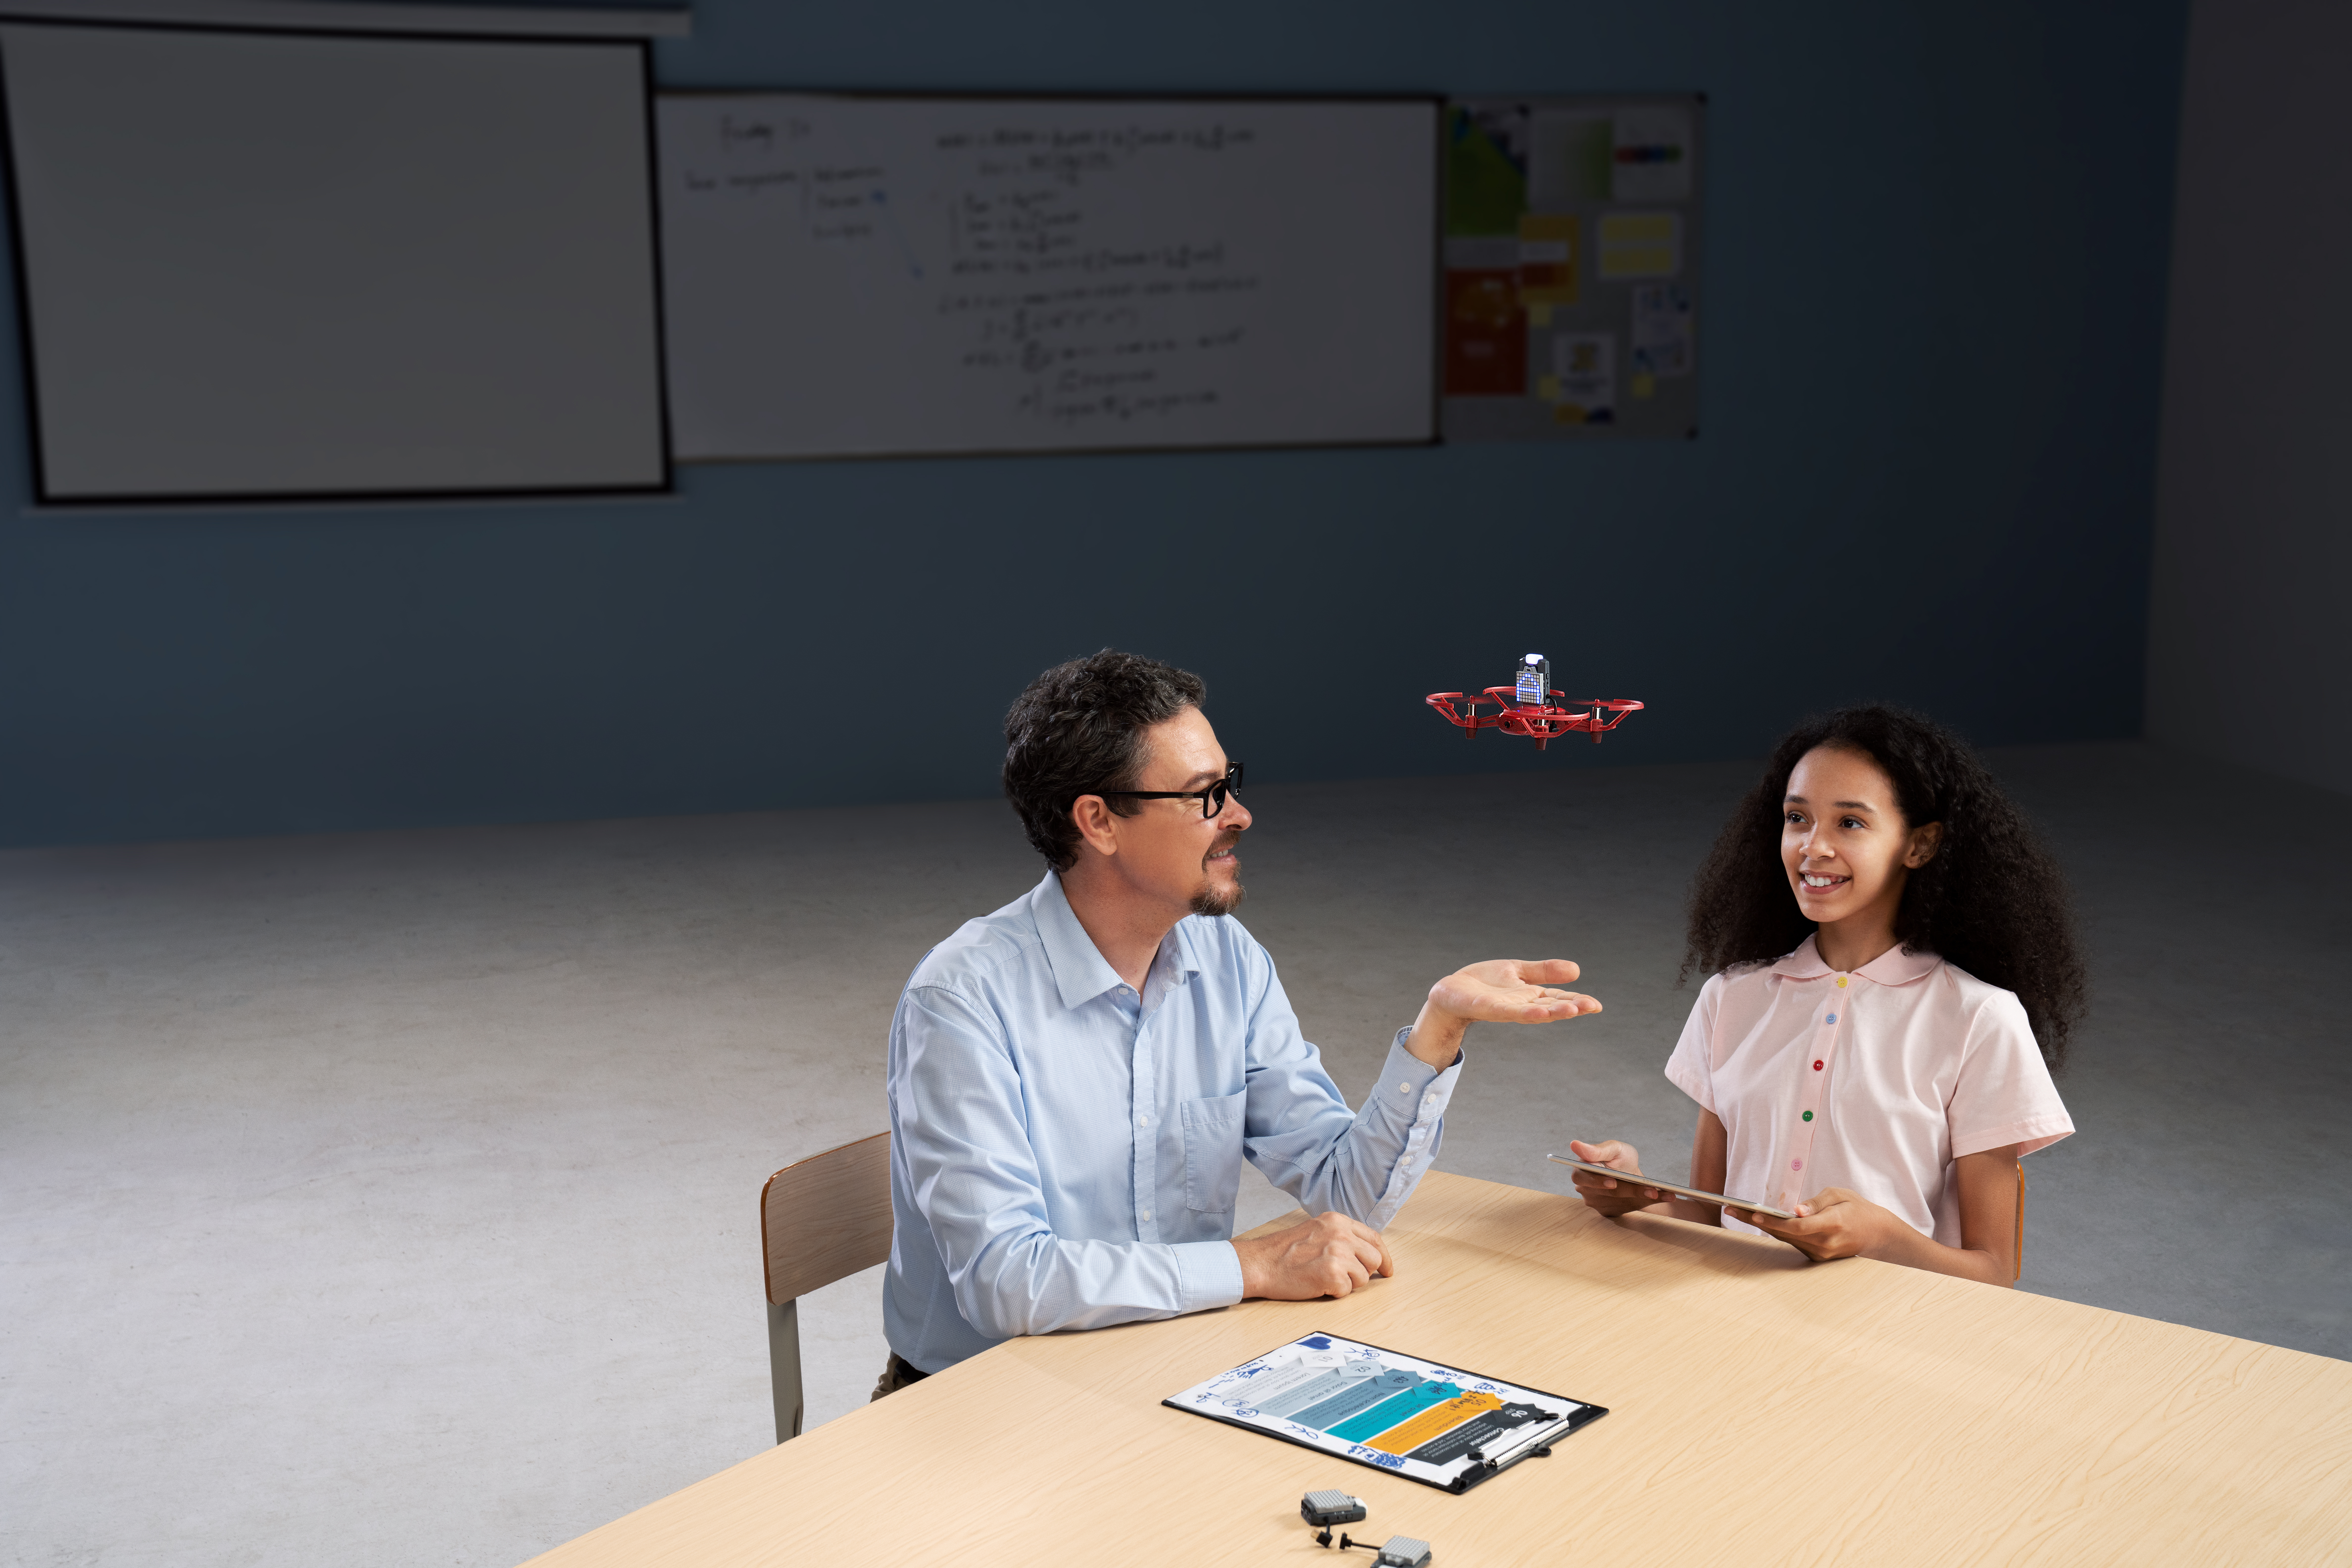 With the help of educators, students can learn to control the RoboMaster TT drone using open-source coding platforms